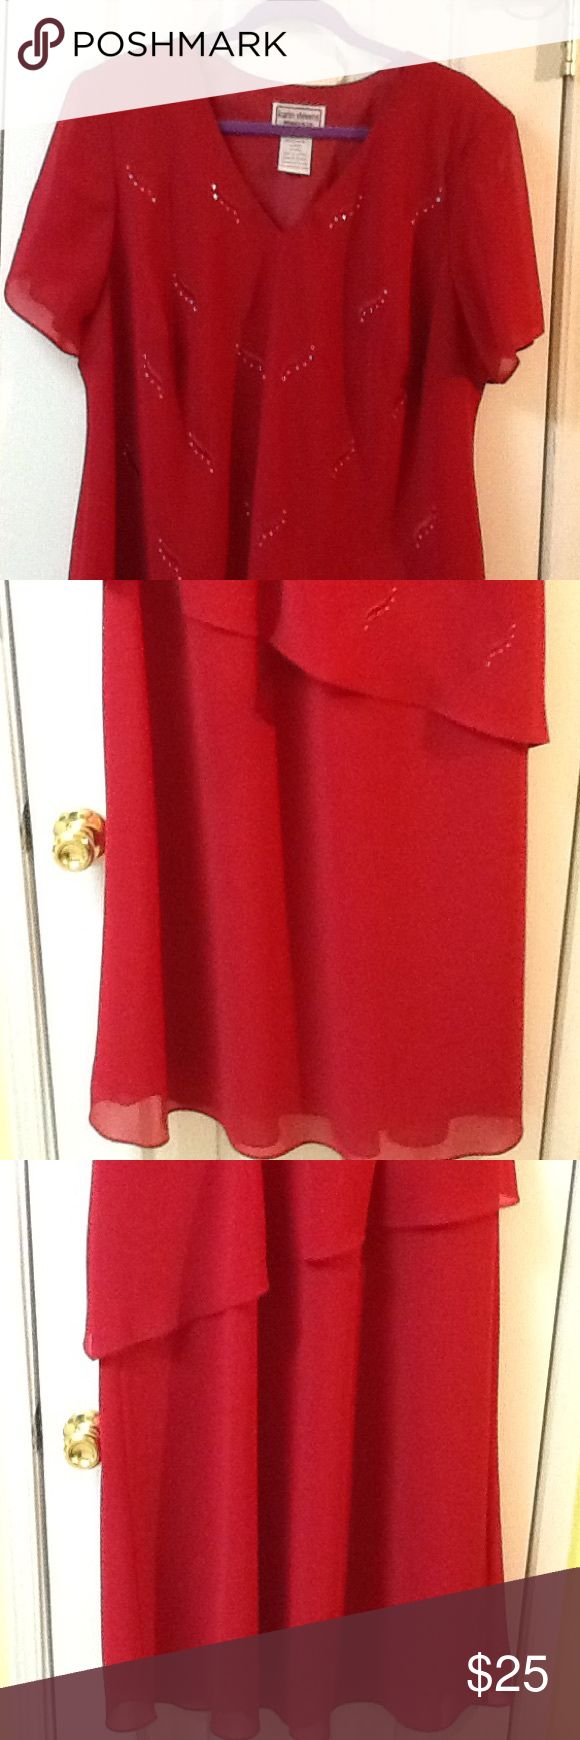 """Red Size 20W P Evening Dress Vintage Easy care size 20w women's polyester dress. Pullover style. Top is a little cover. In good condition. Long. Very slimming. 44"""" bust, 44"""" waist,  48"""" hips, 50"""" long. Fully lined. Karen Stevens Petite  Dresses Maxi"""